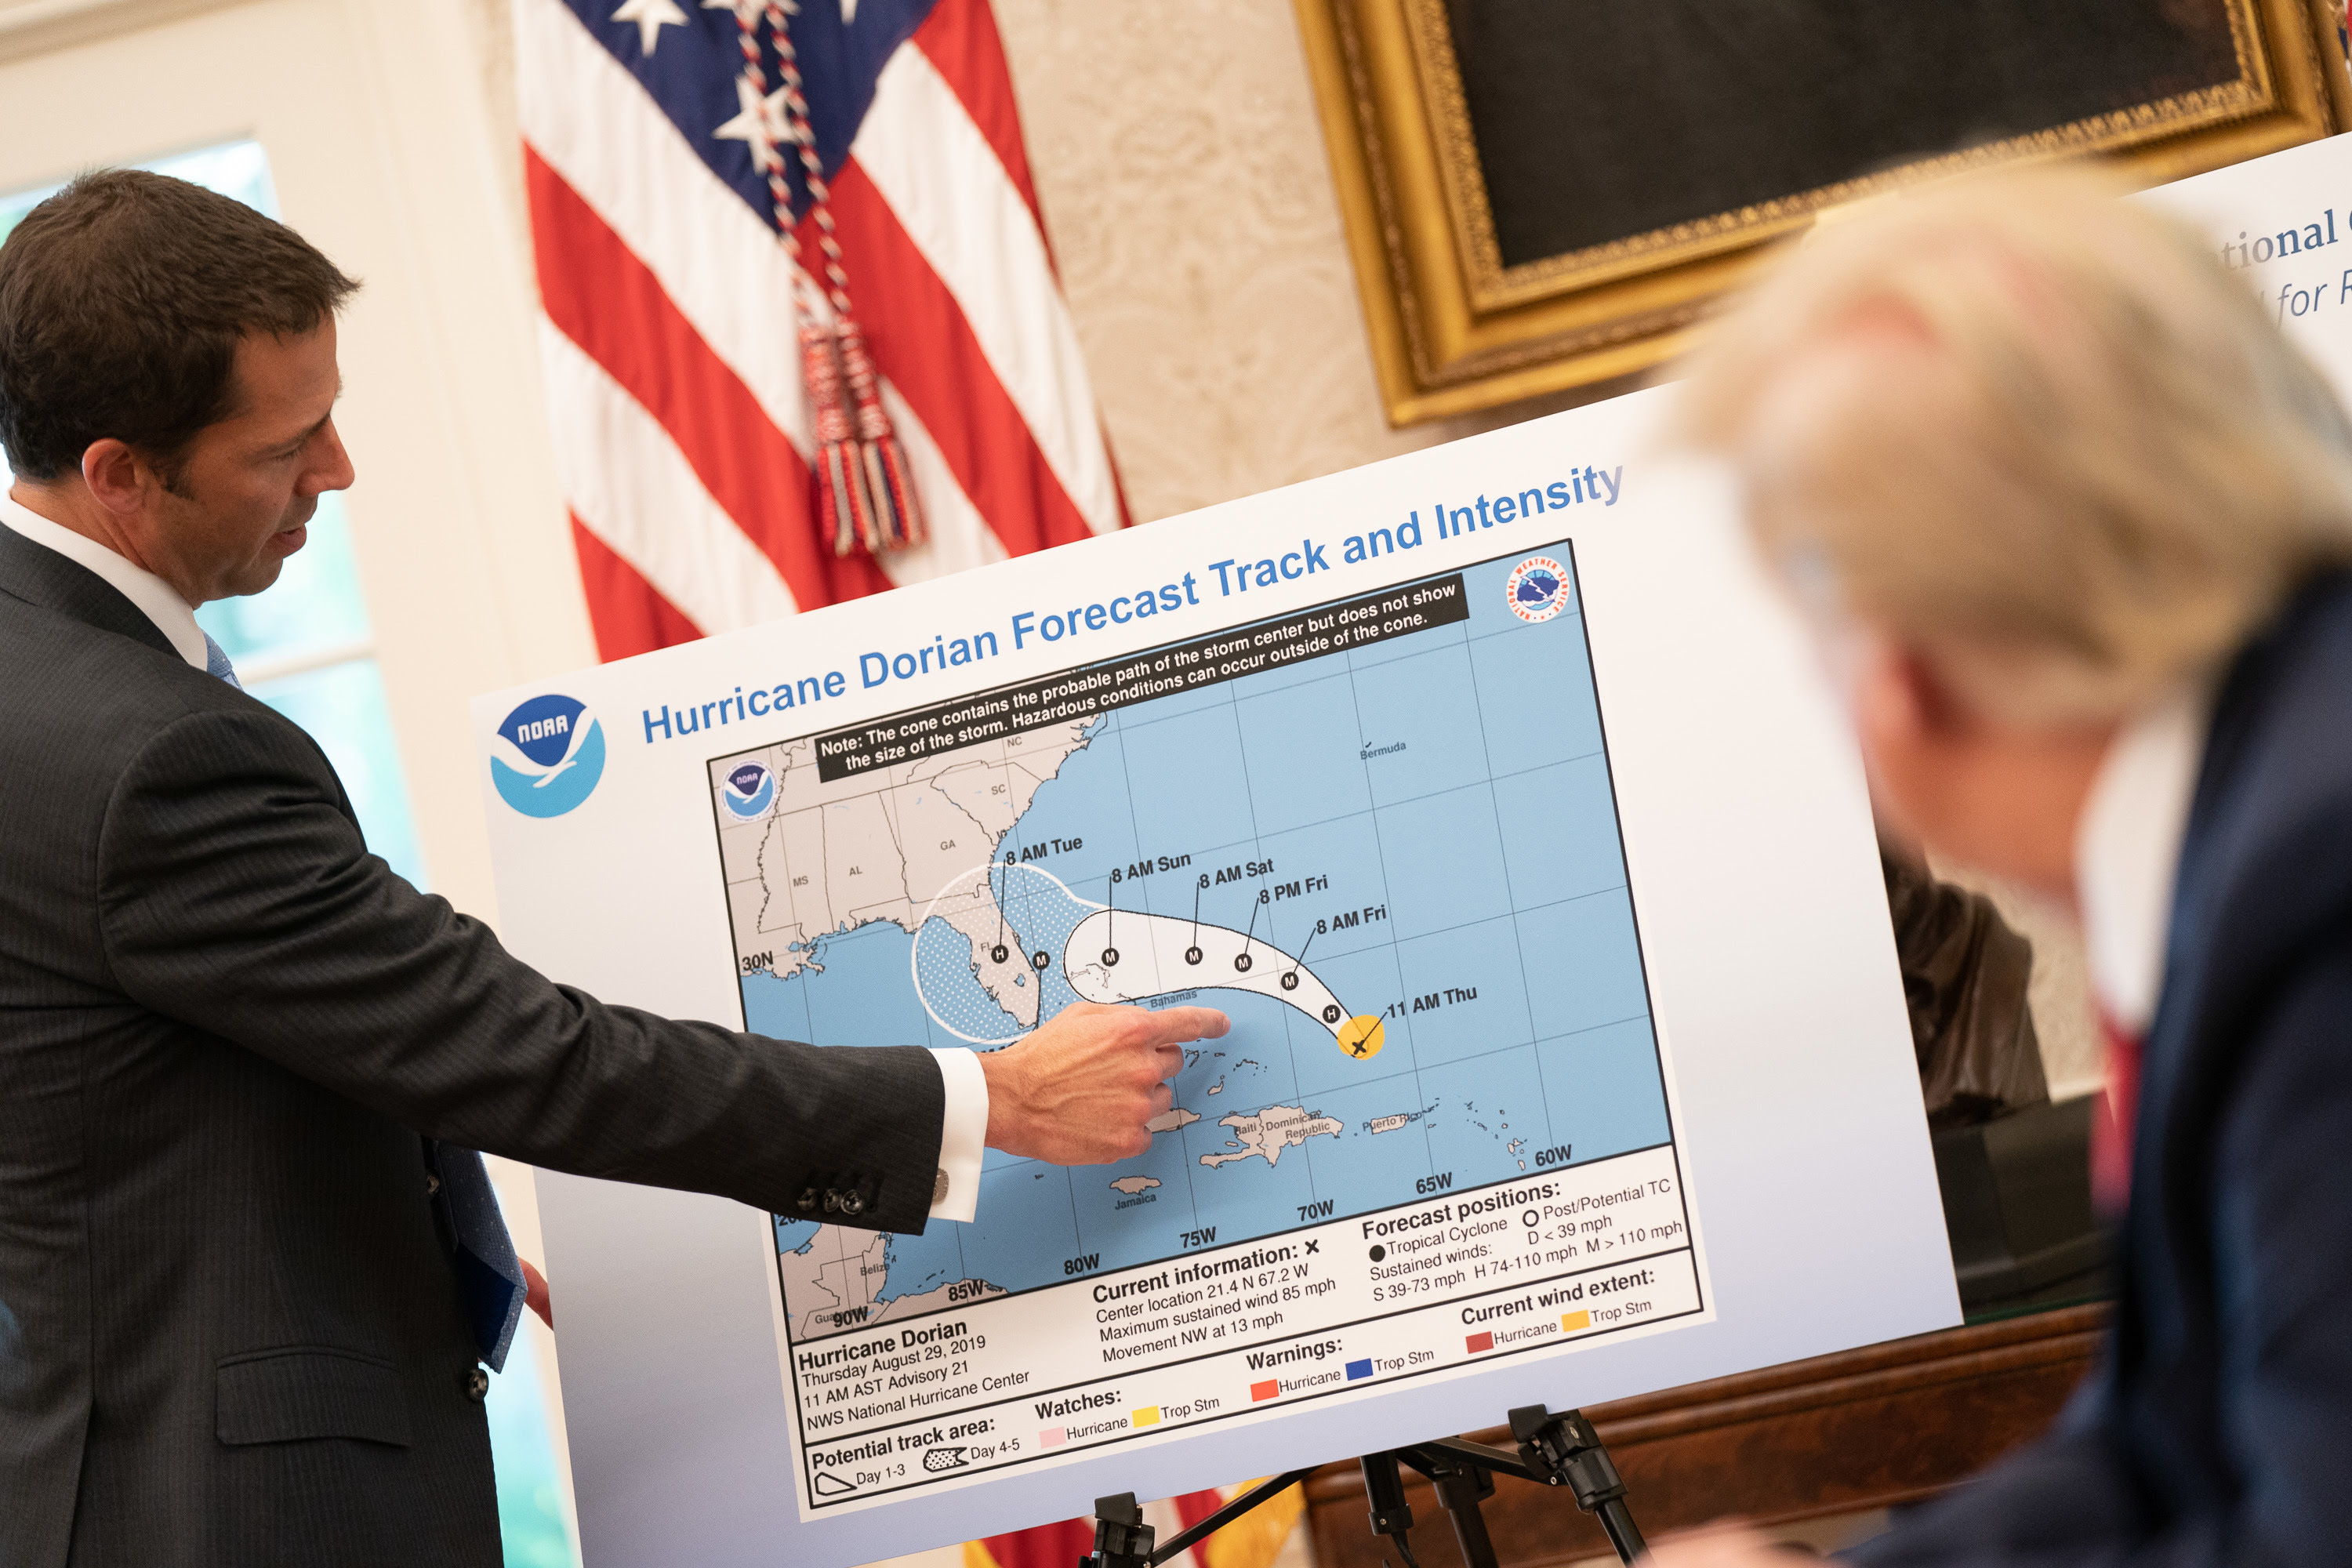 Trump refuses to concede he was wrong about hurricane forecast